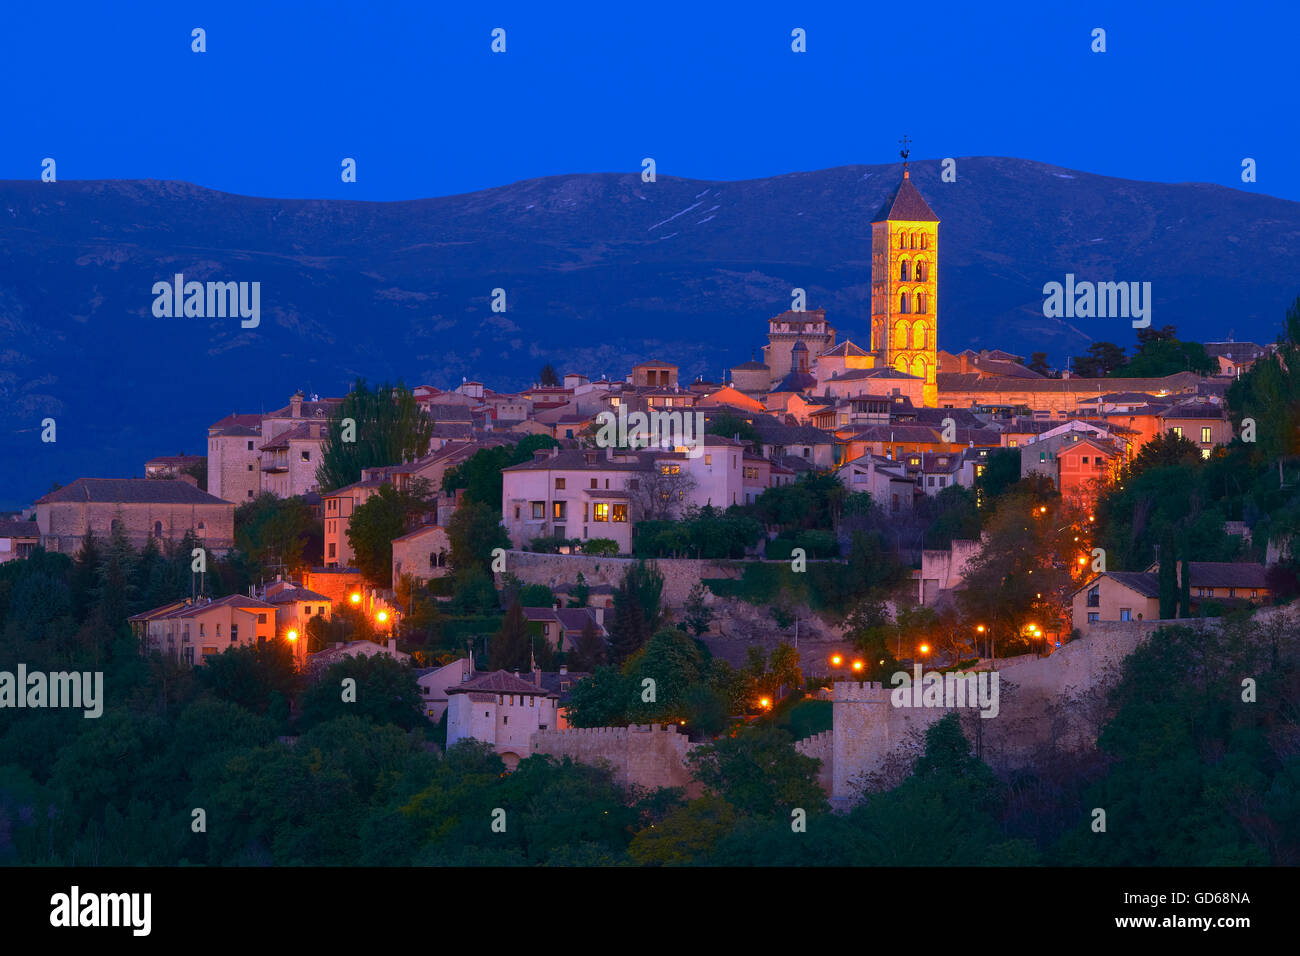 San Esteban Church at Dusk, Segovia, Castilla-Leon, Spain, Stock Photo